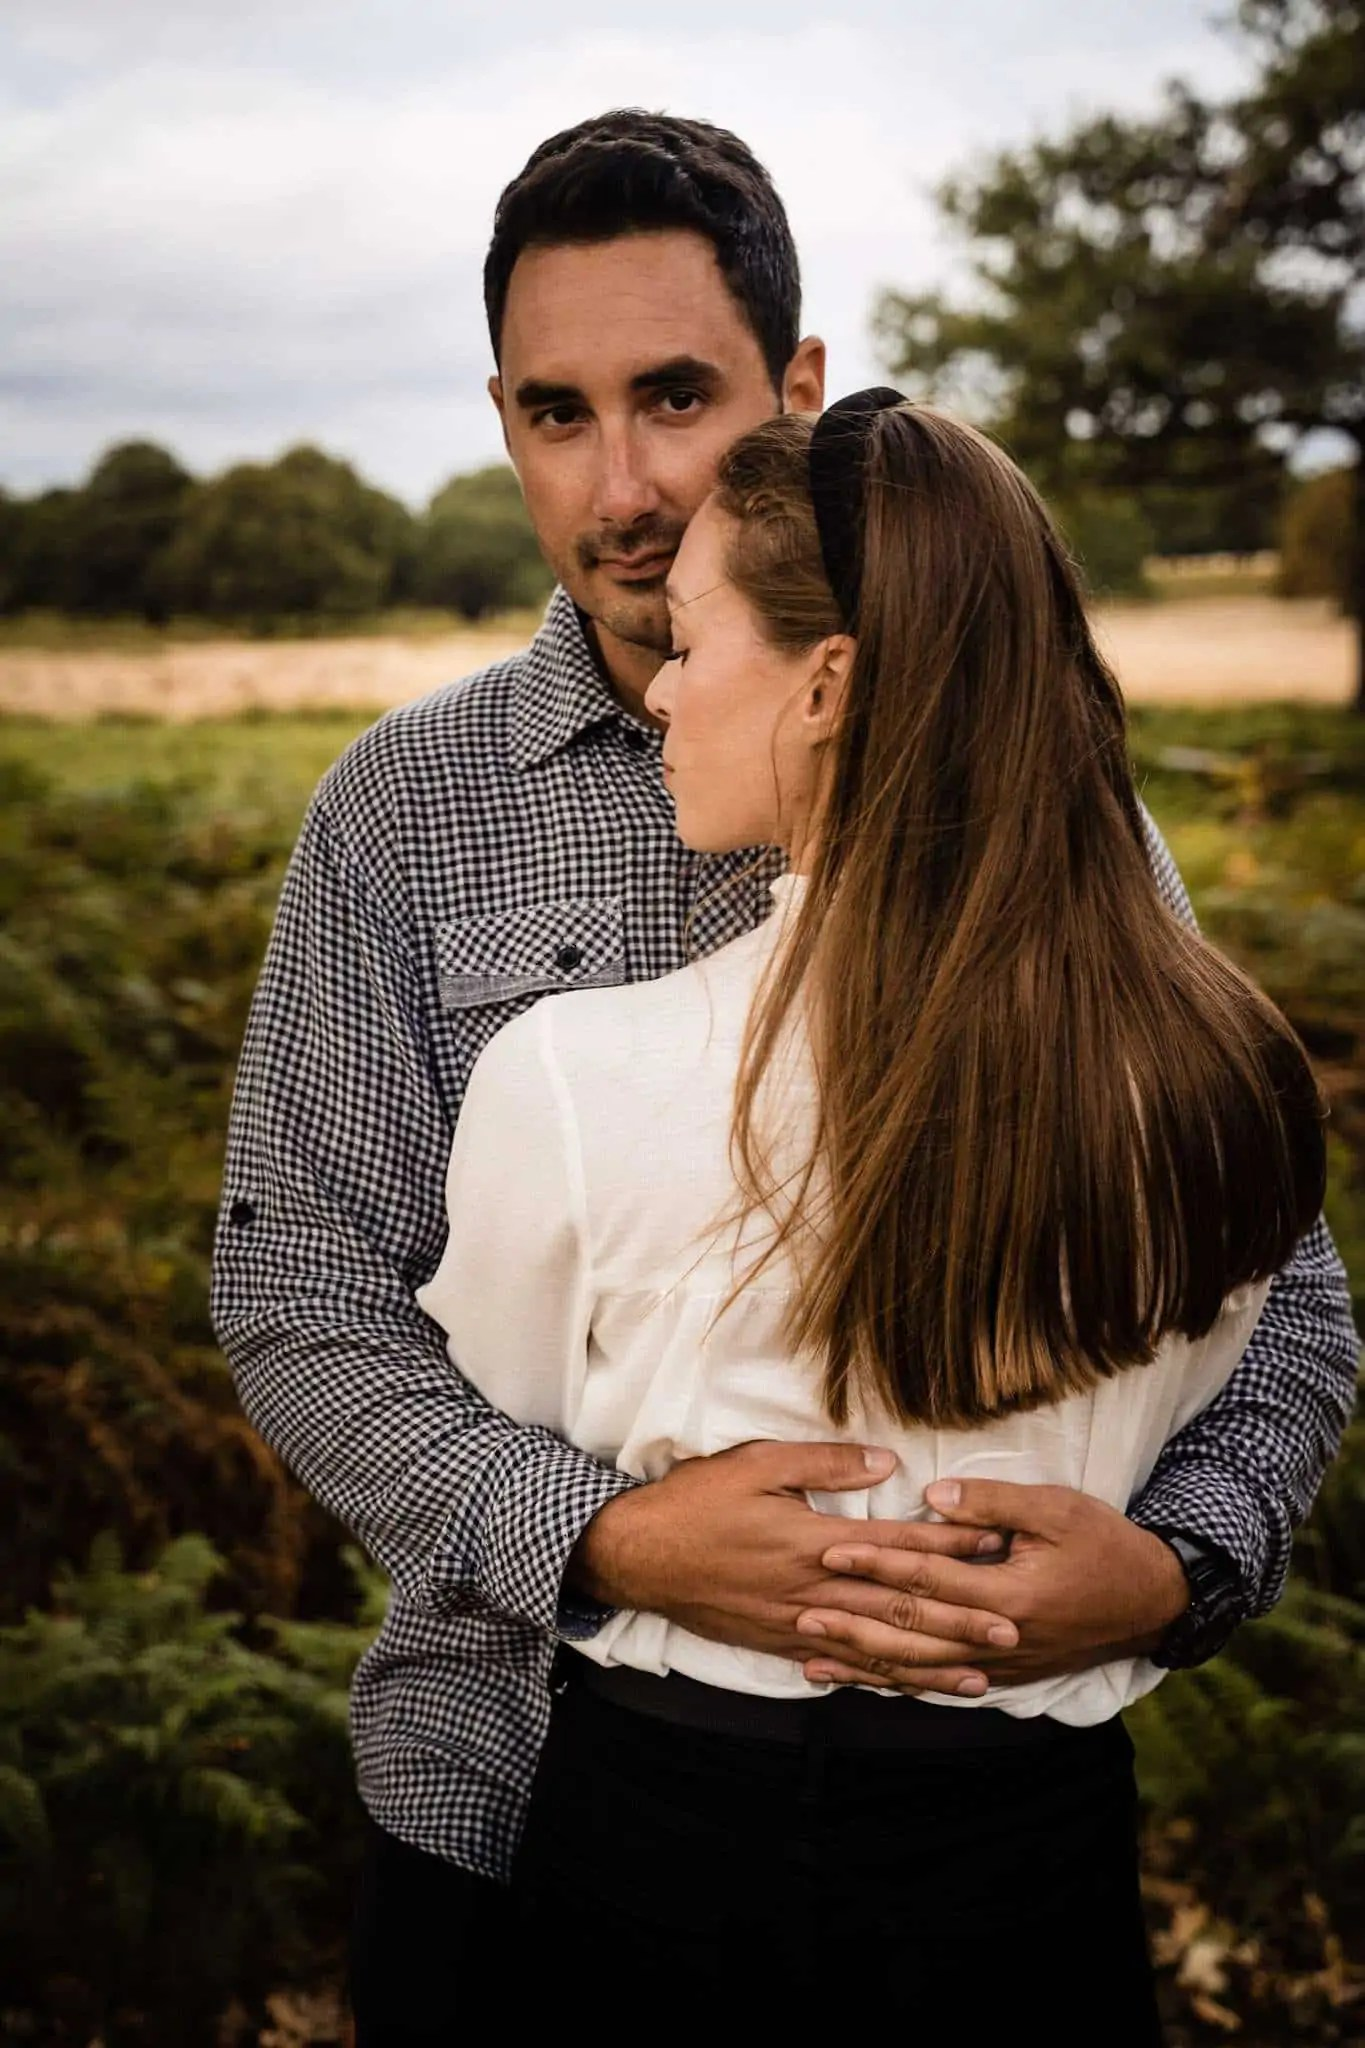 An engaged couple embrace during an engagement shoot in Richmond Park